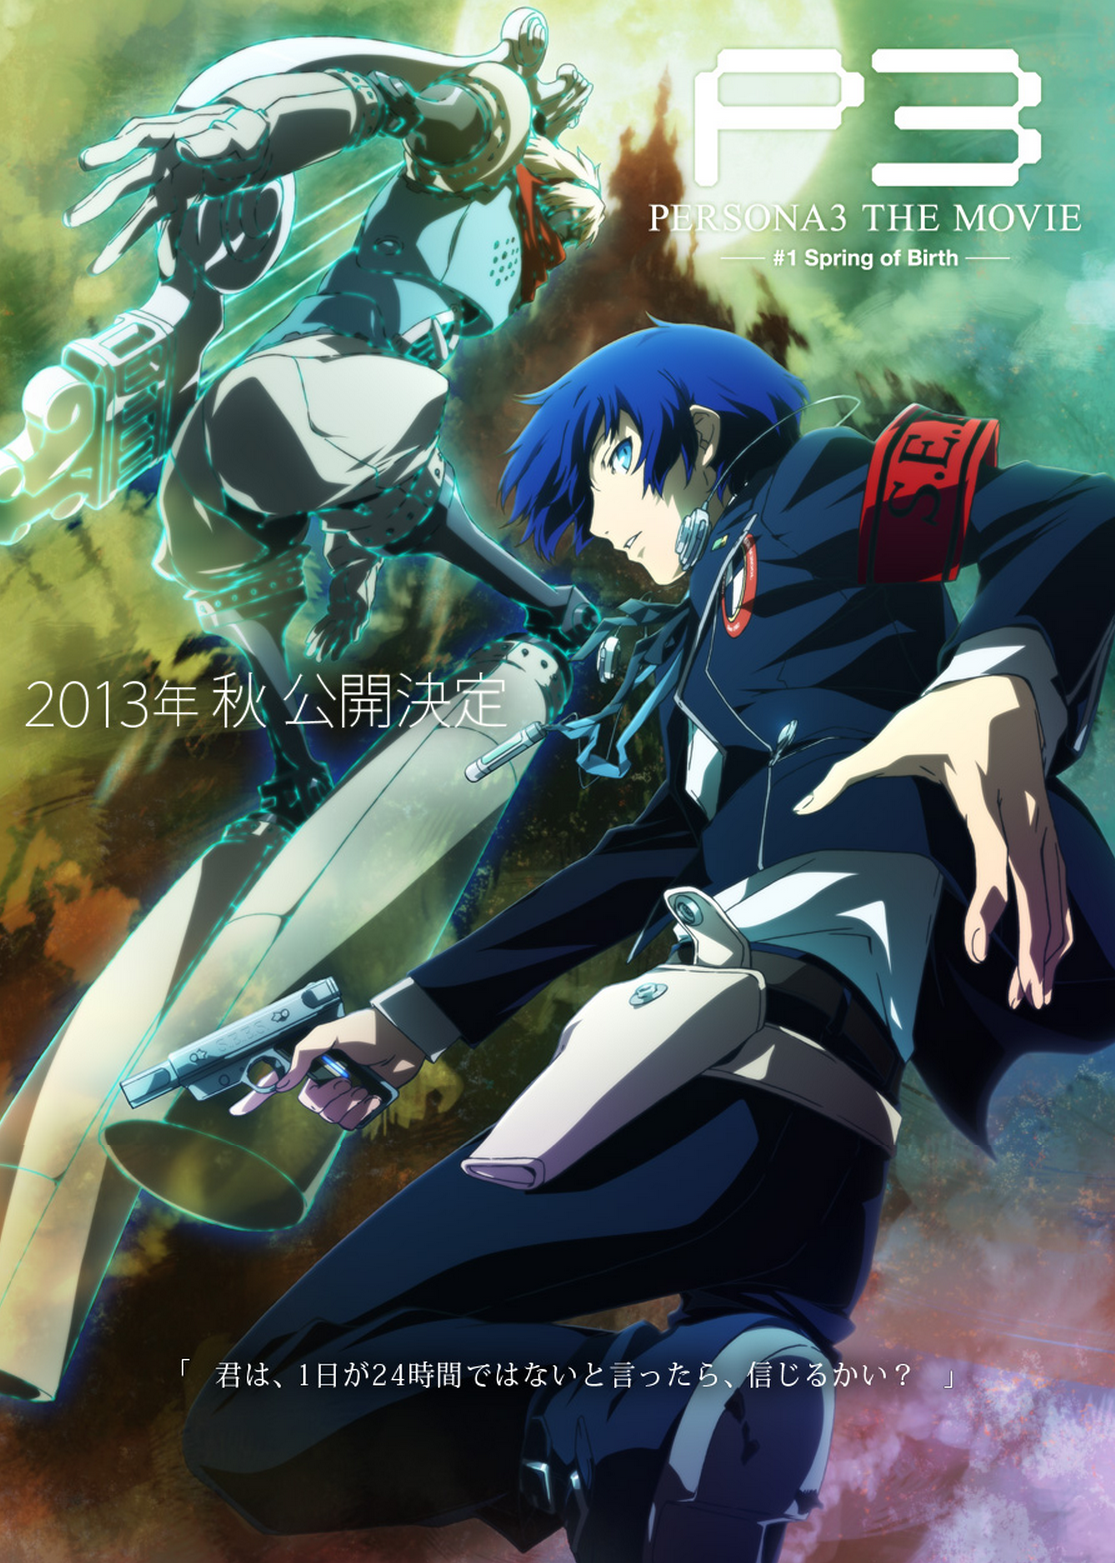 Download Persona 3 The Movie 1 : Spring of Birth Sub Indonesia